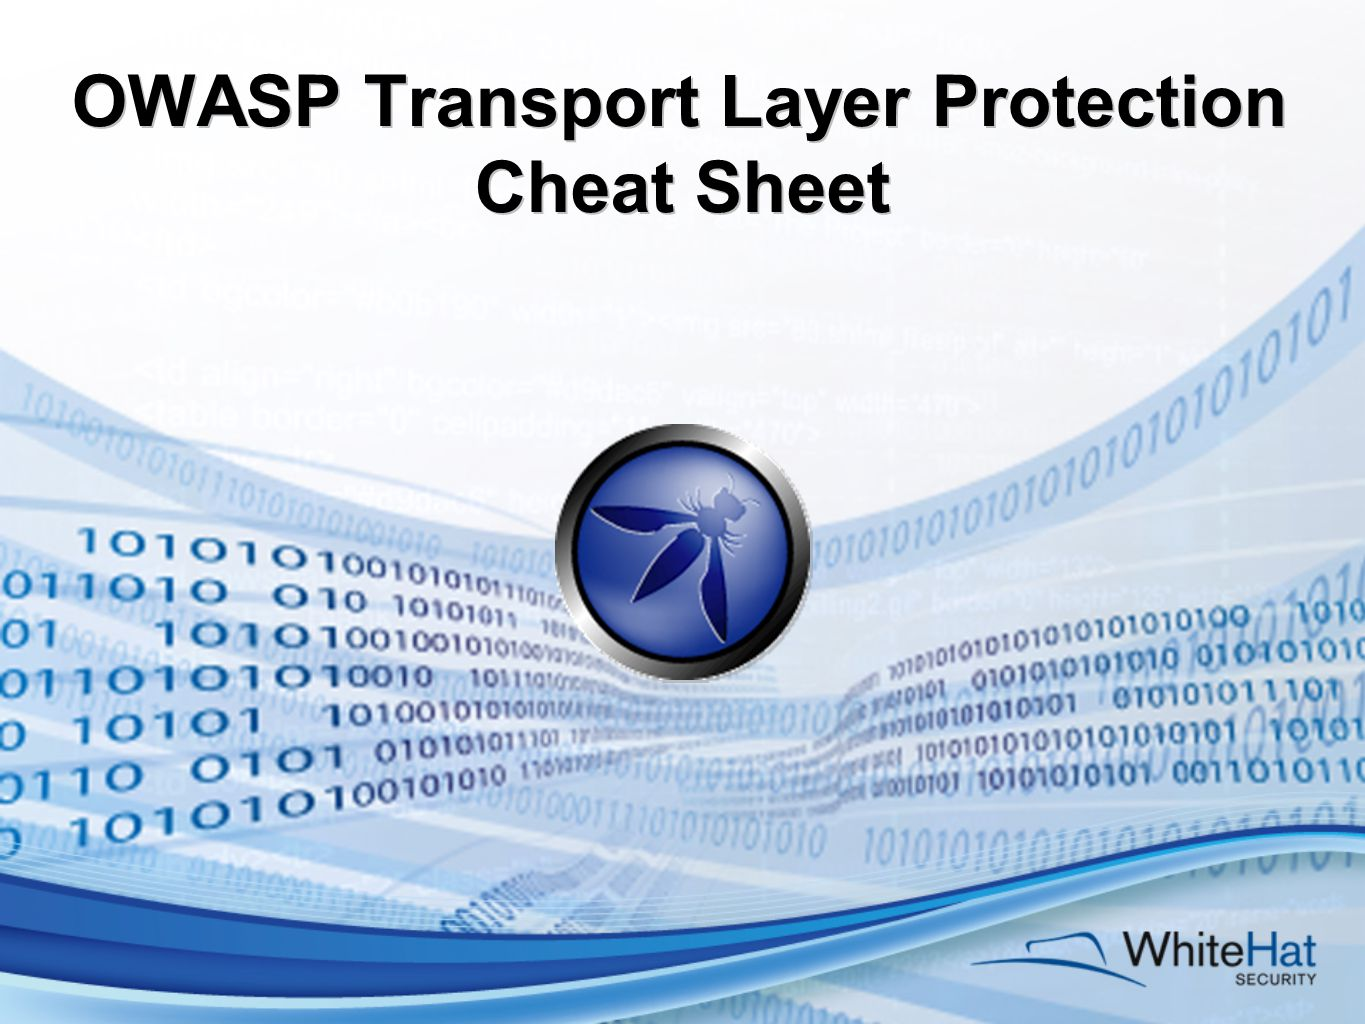 OWASP Transport Layer Protection Cheat Sheet